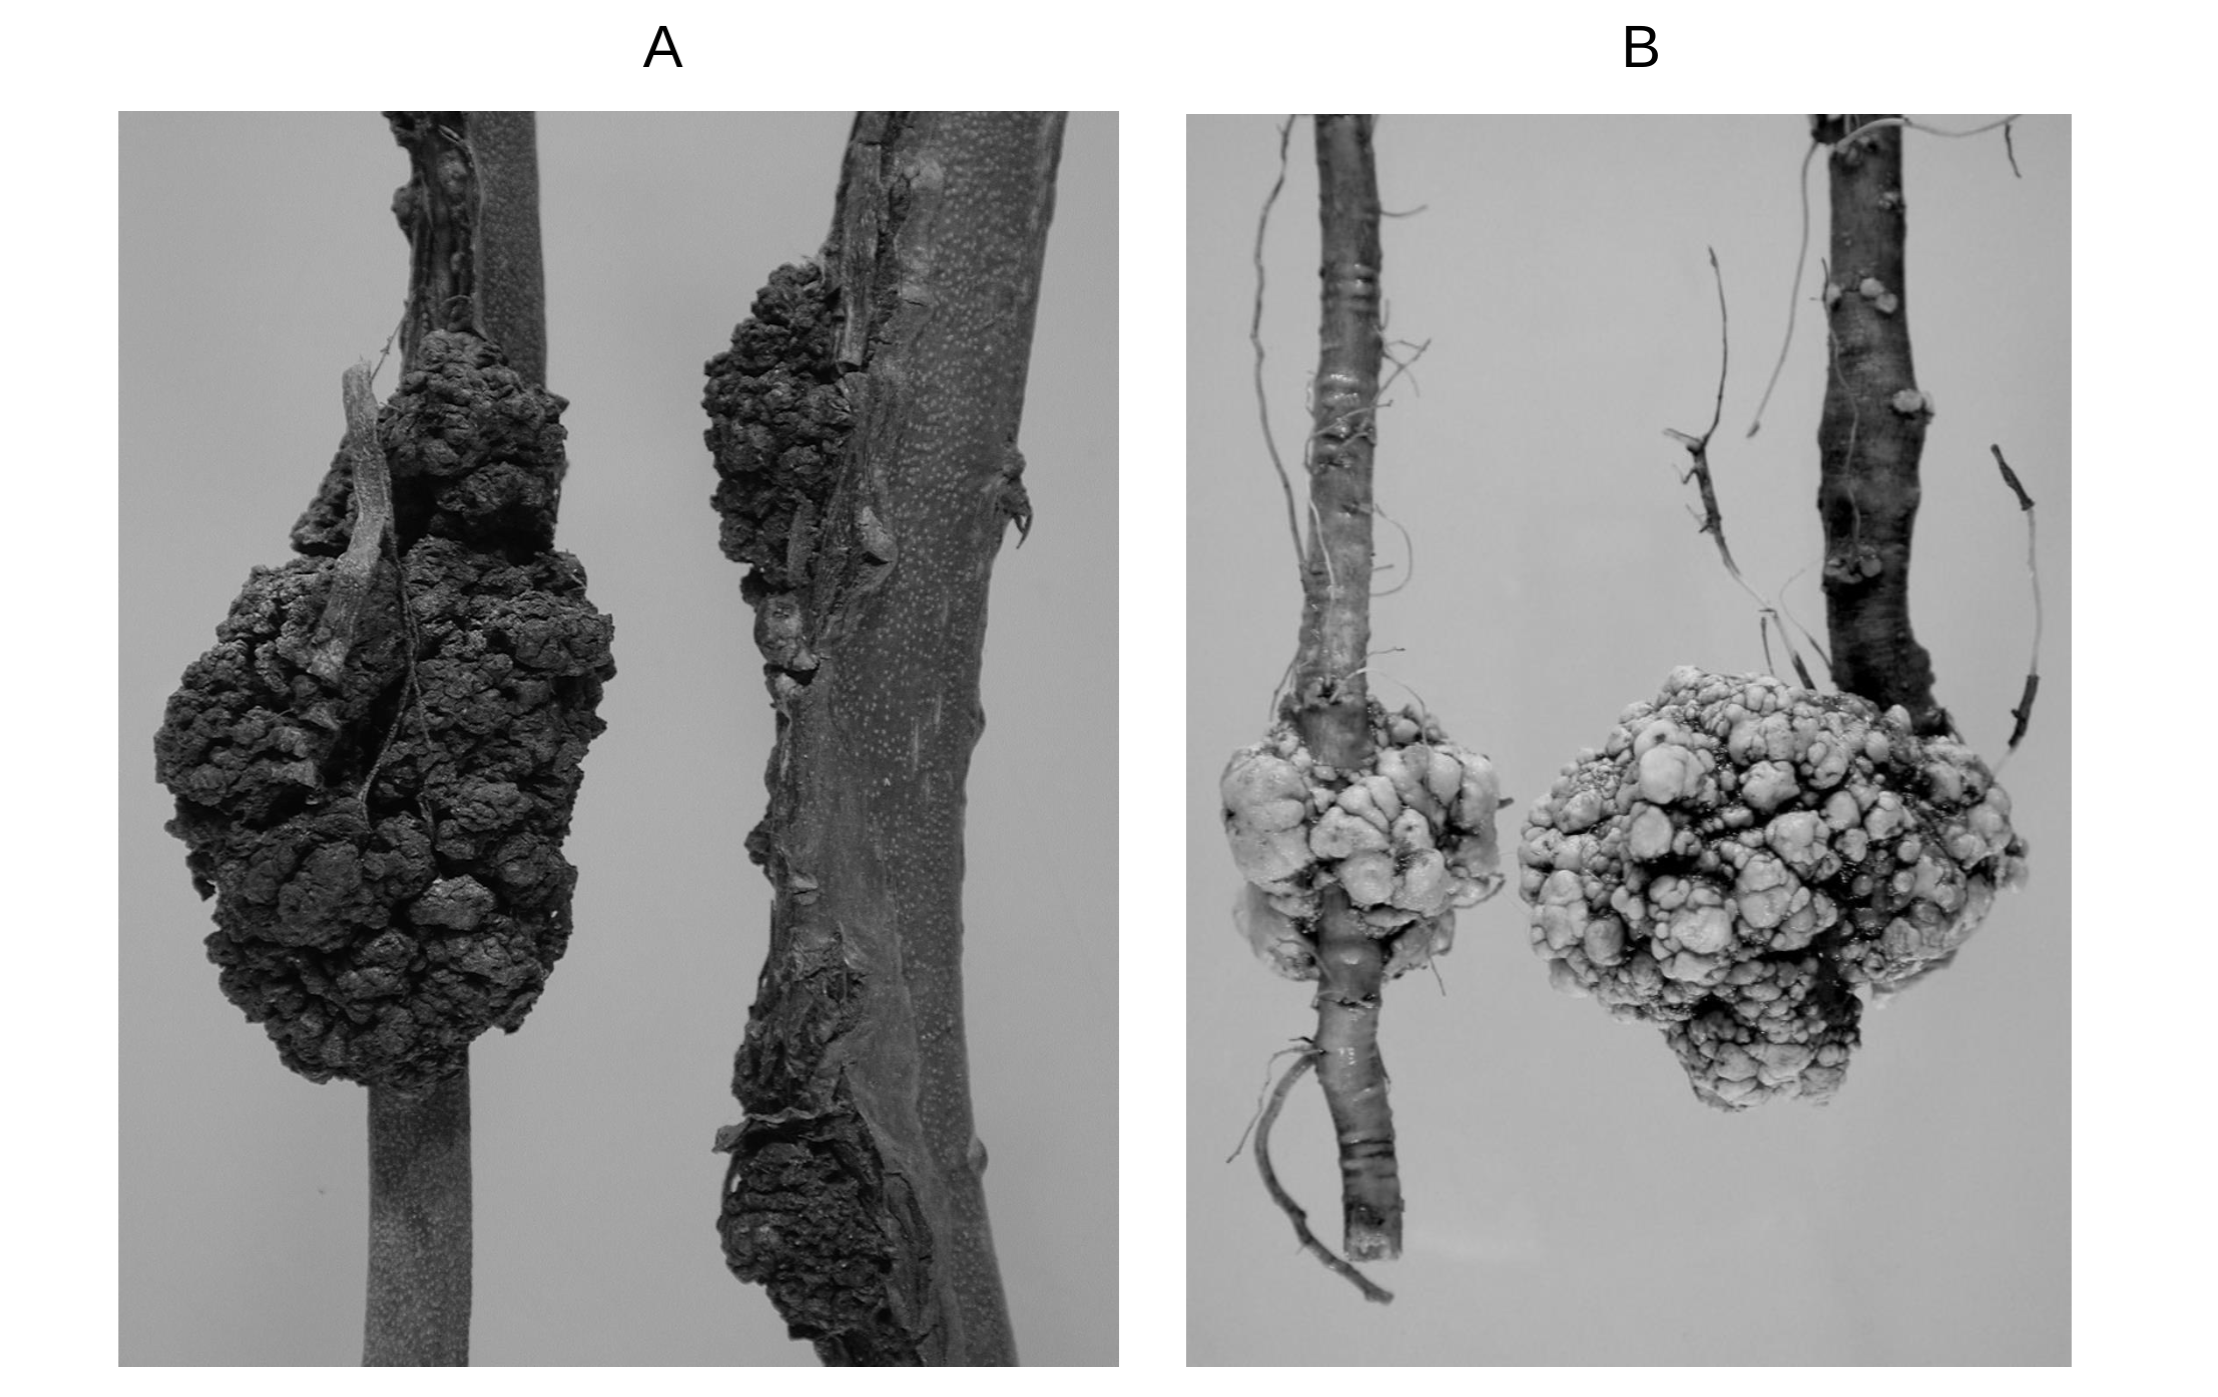 Crown galls in blueberry stem (A), and apple root (B) infected with Agrobacterium.